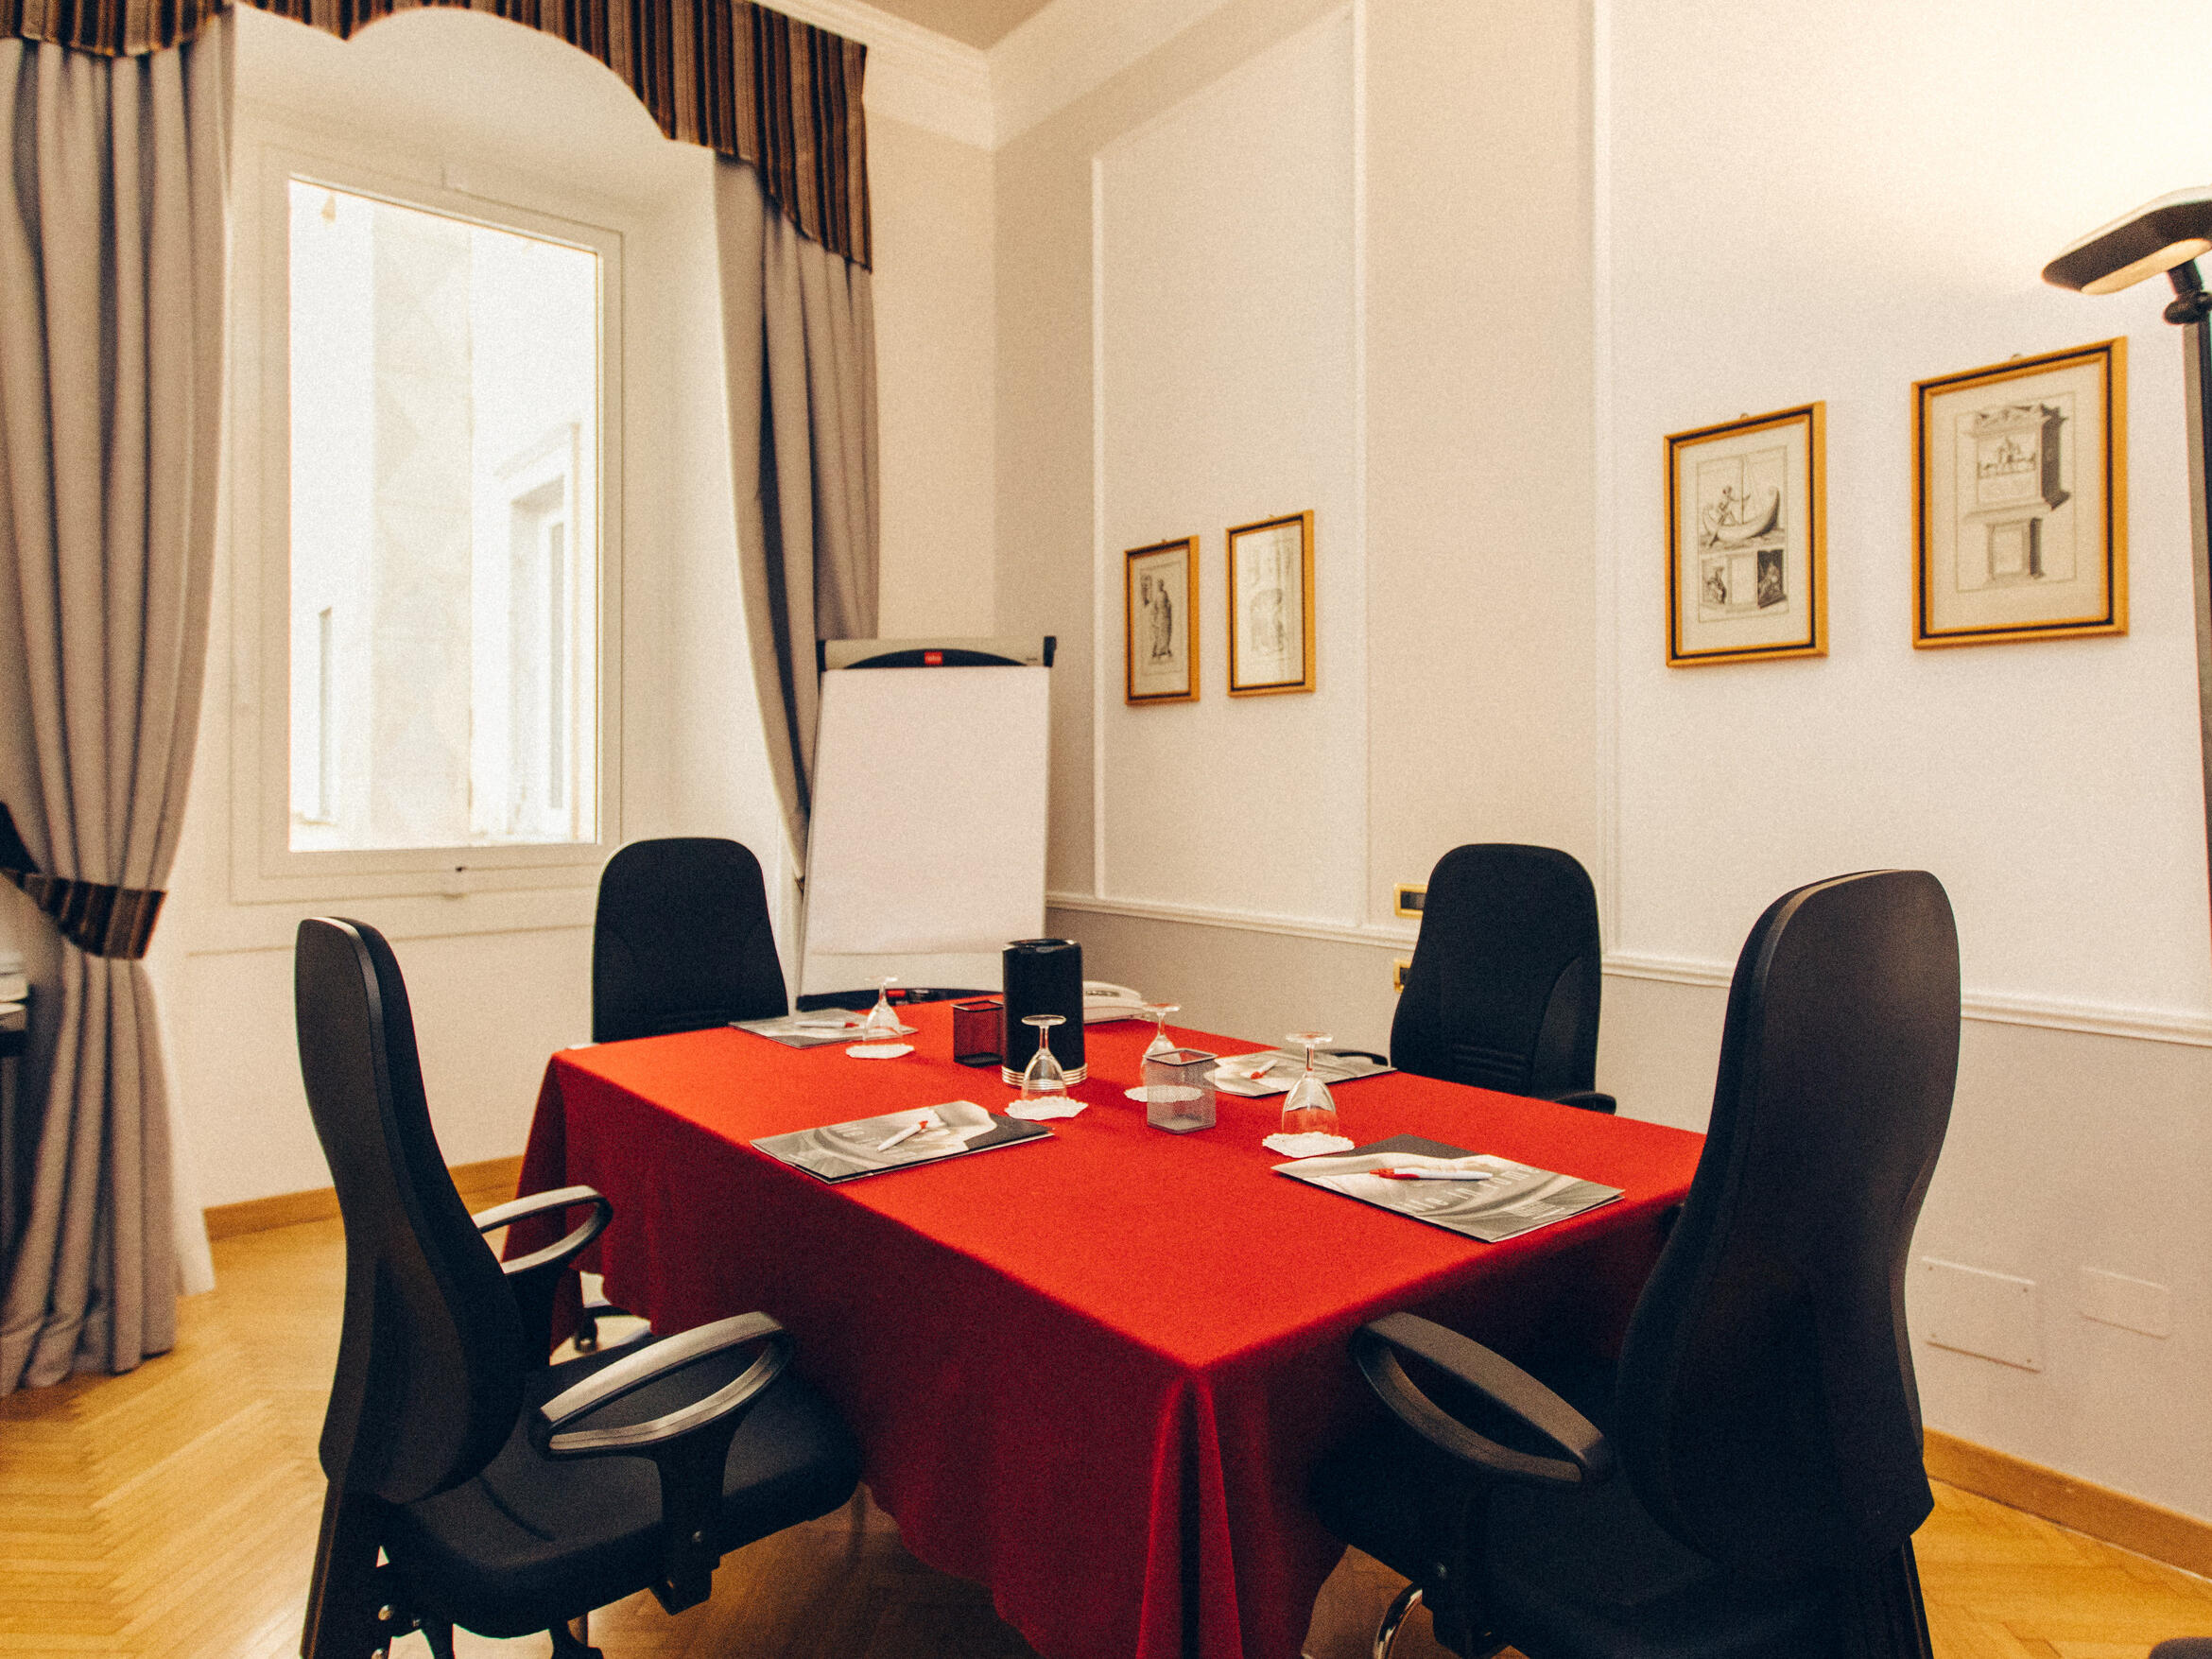 Business Room in Bettoja Hotel Massimo D'Azeglio